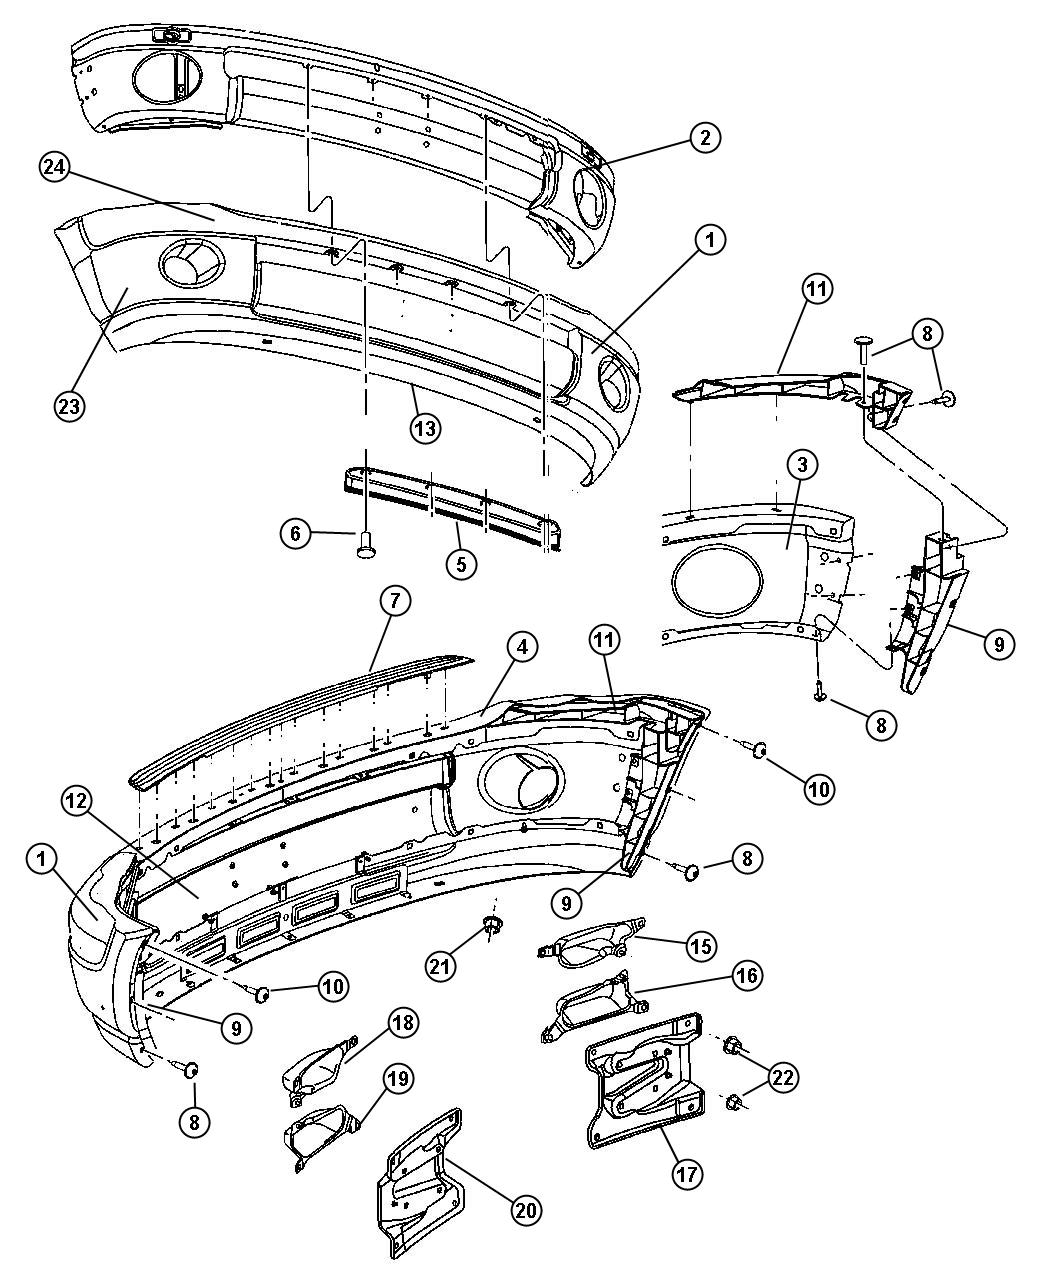 Dodge Ram Bumper Diagram on bugatti engine diagram